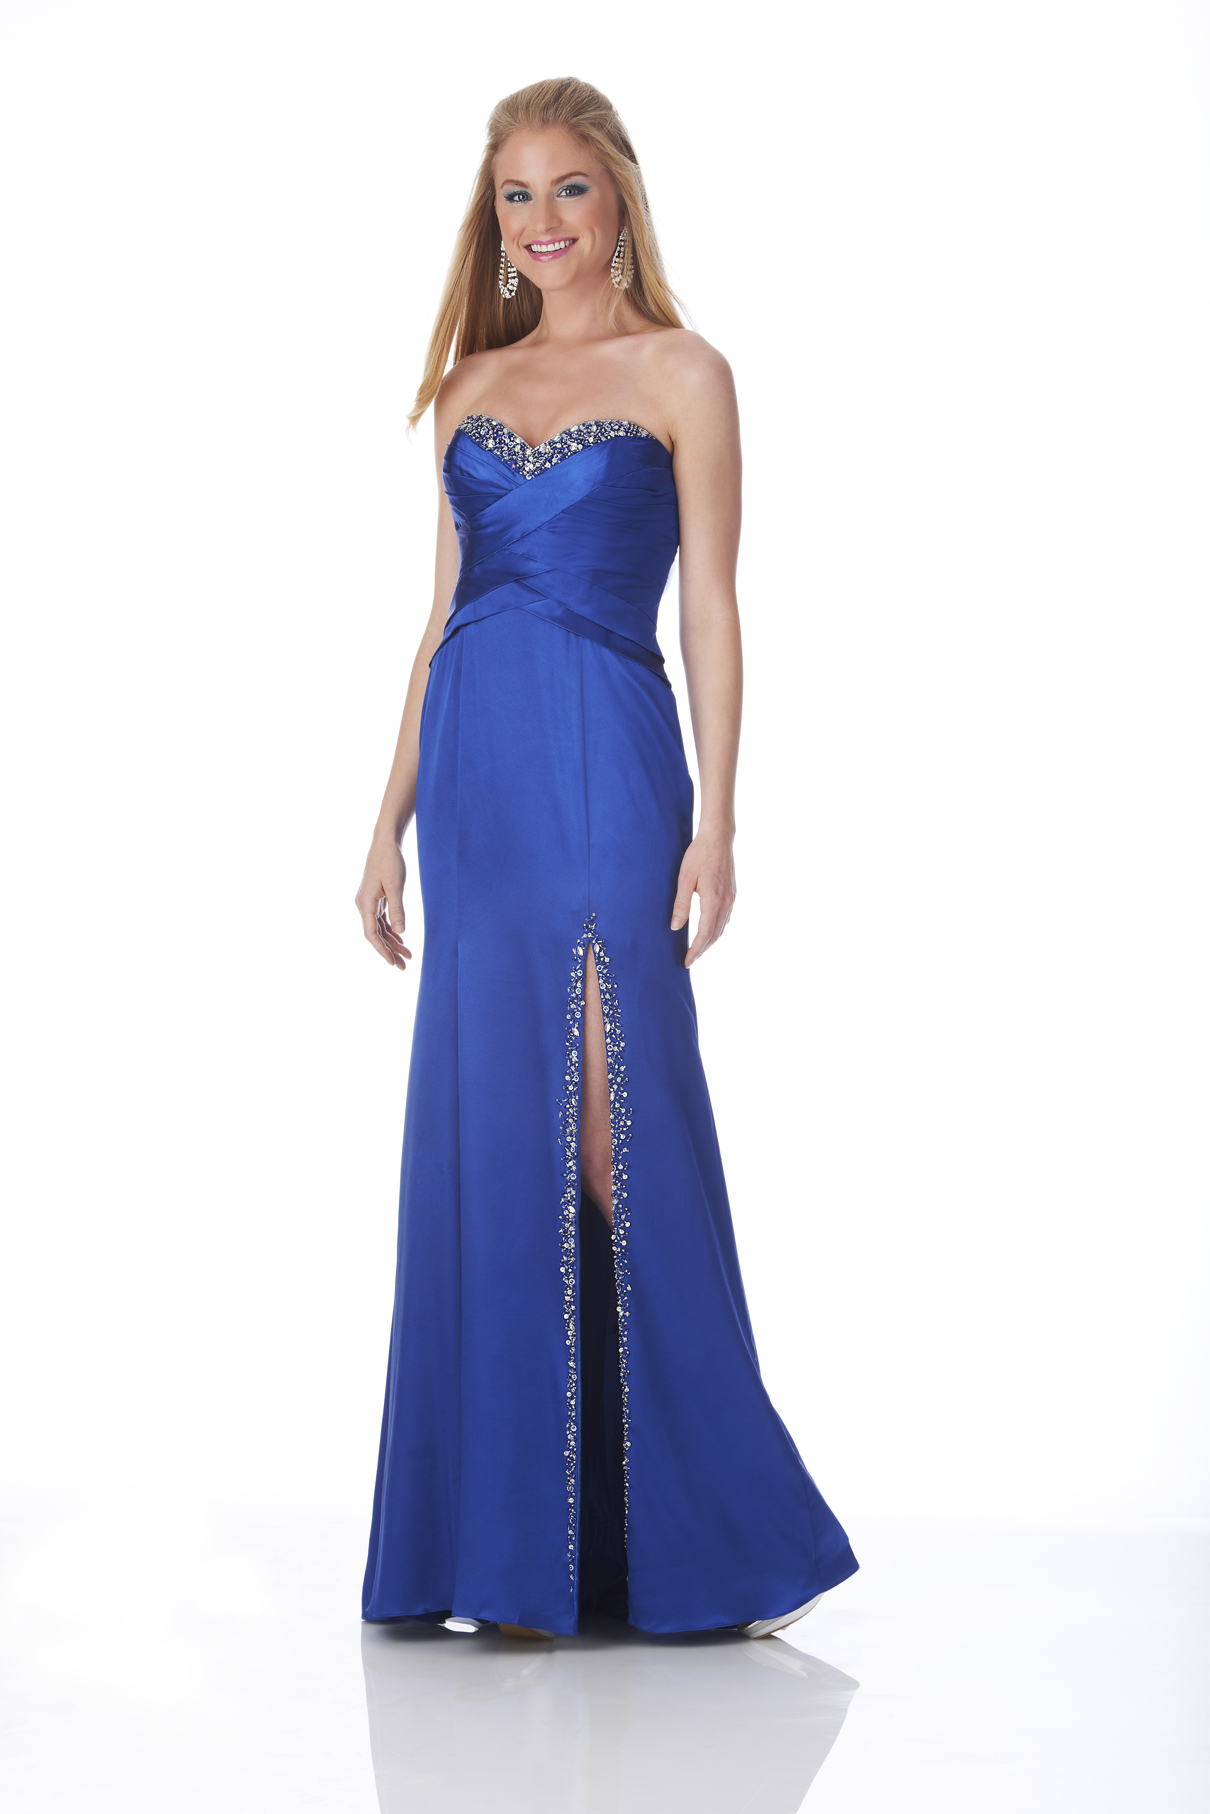 Evening dresses portsmouth nh eligent prom dresses for Wedding dresses burlington vt